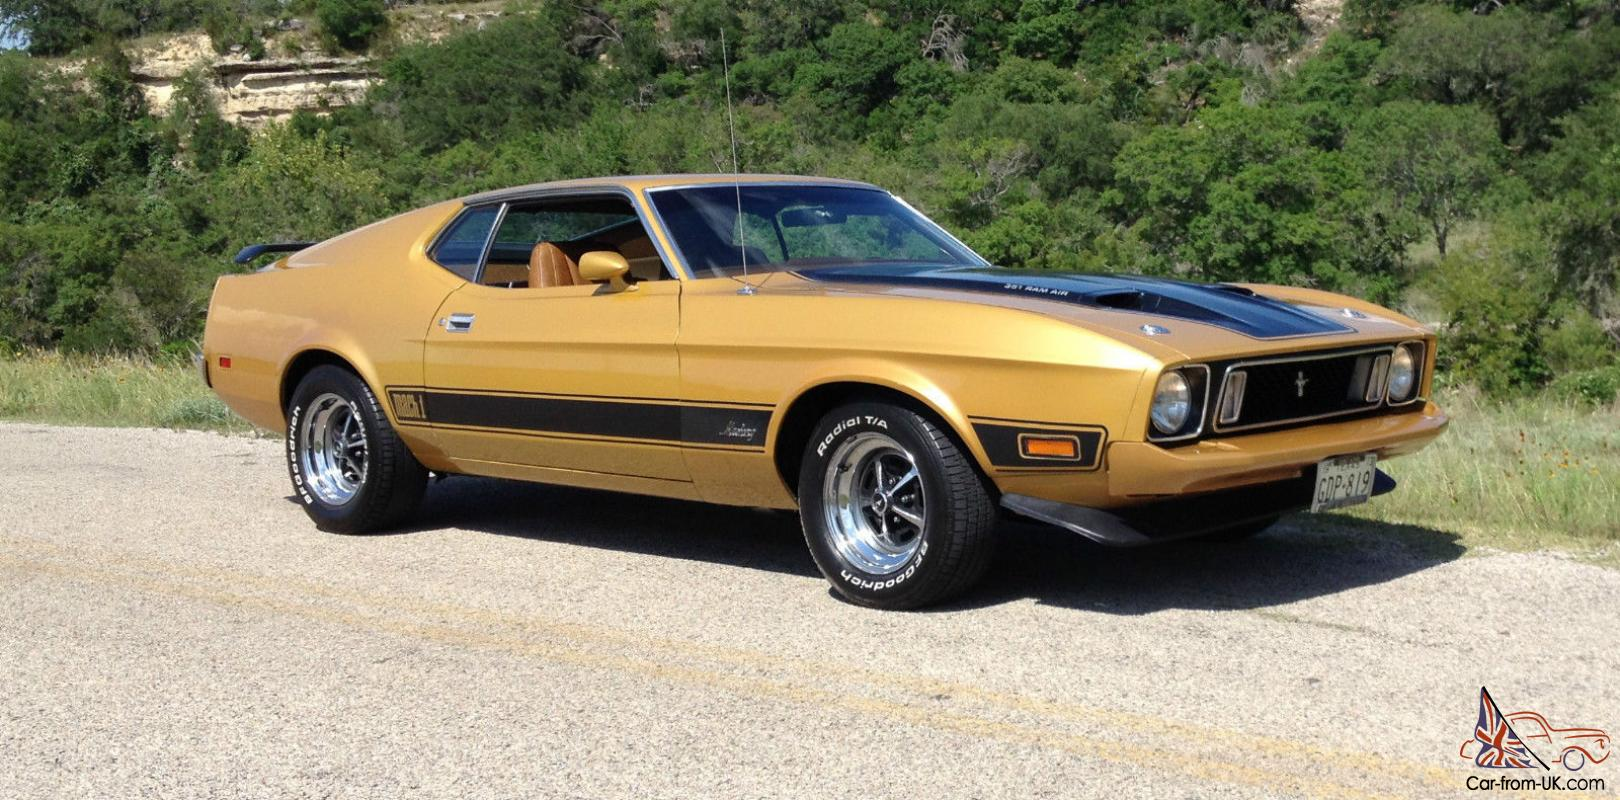 1973 mustang mach 1 351 cleveland q code car the last of the cobra jets